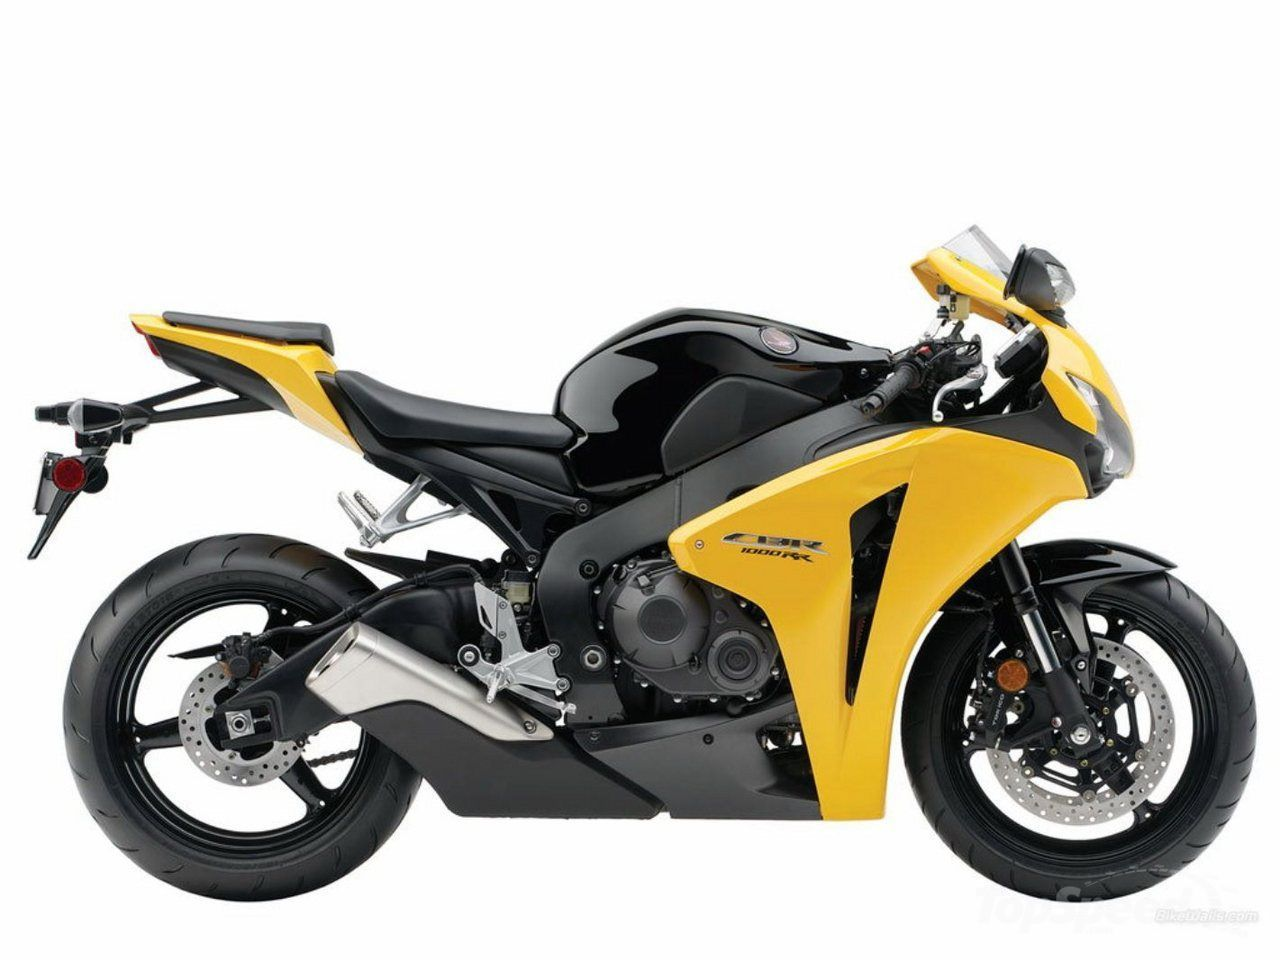 Great bike honda needs to visit italy or go